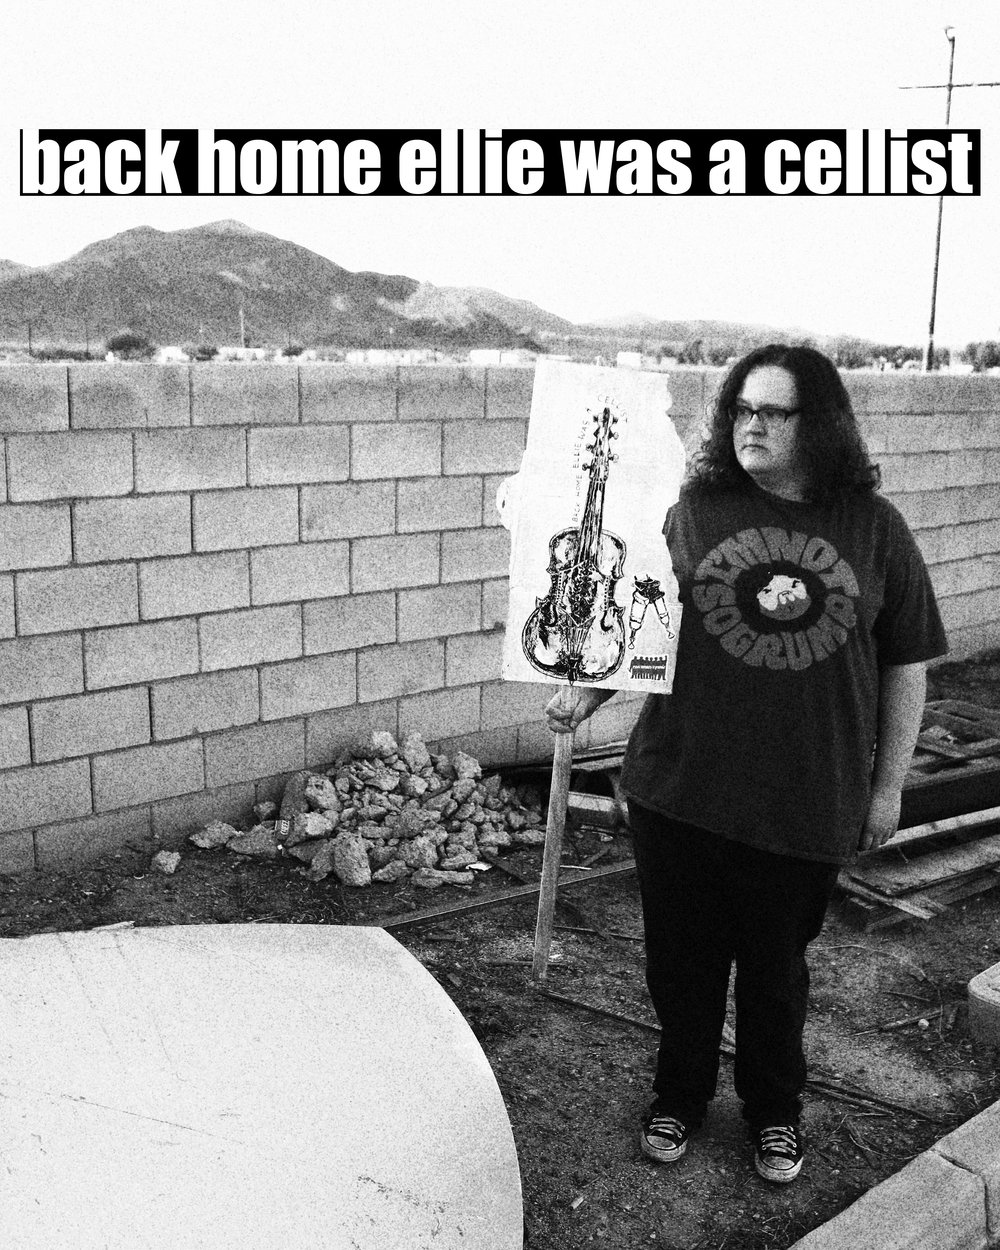 meme-cellist.jpg